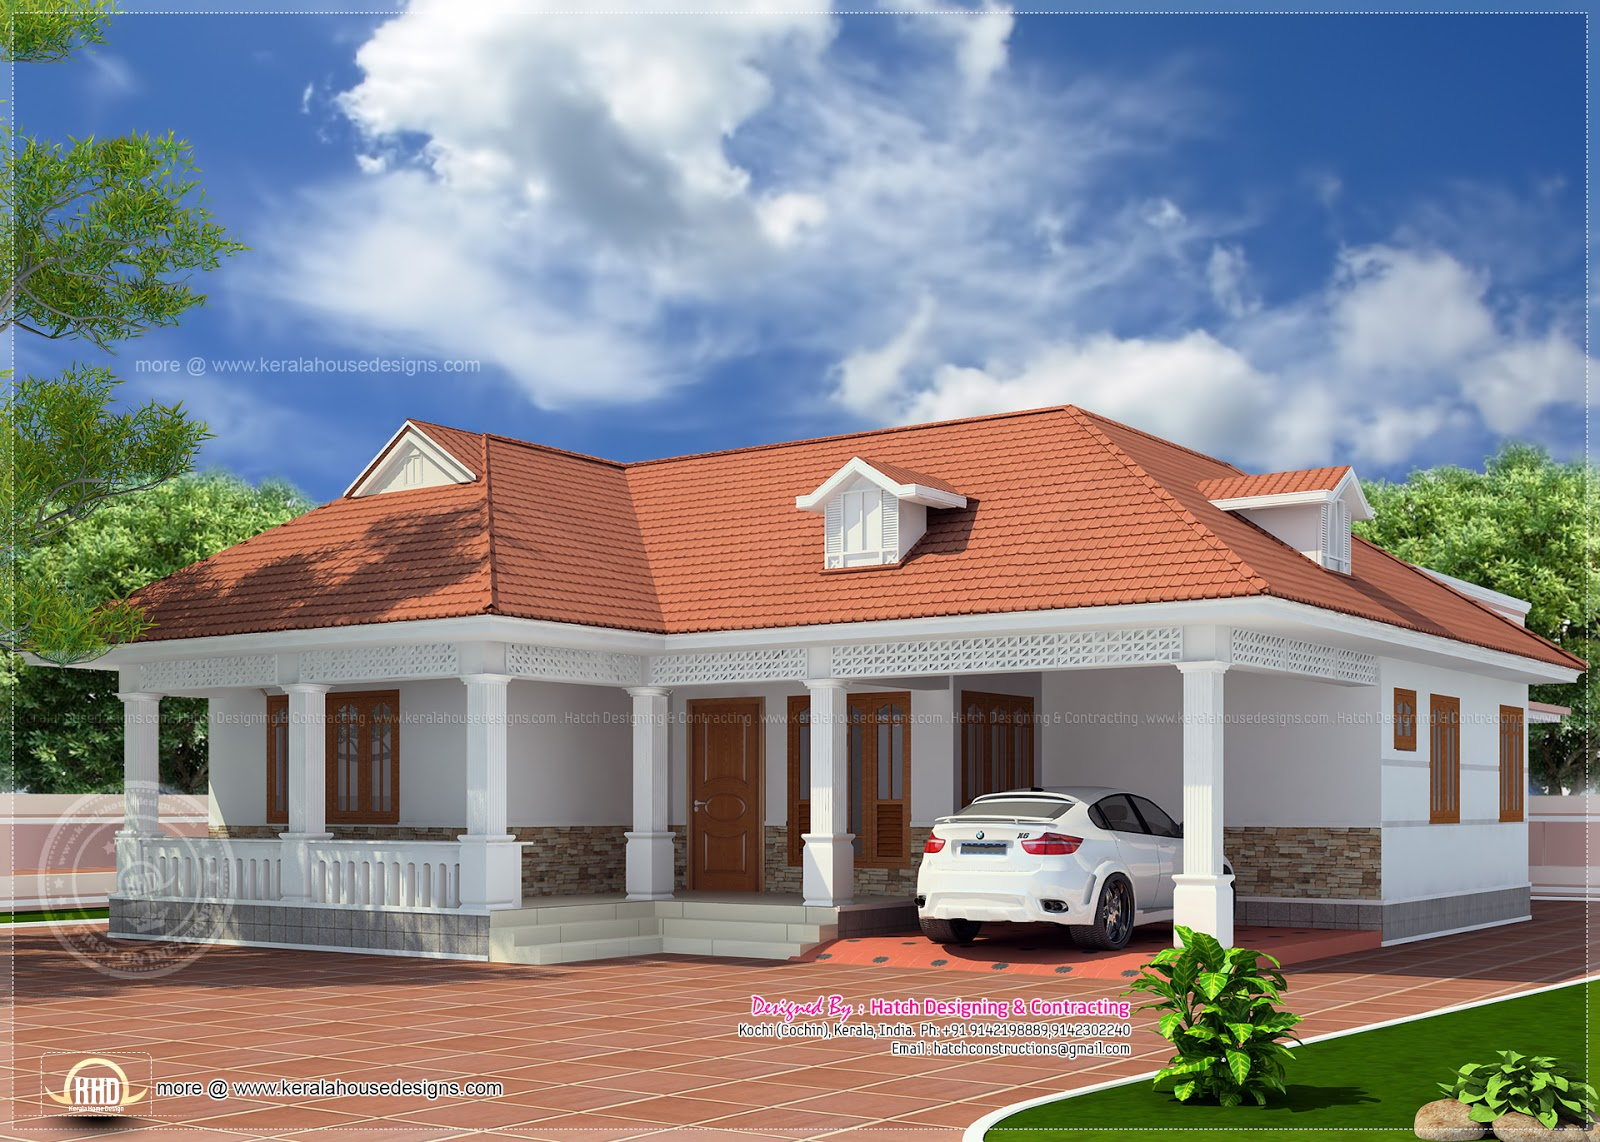 1850 kerala style home elevation kerala home for Kerala house plans and elevations